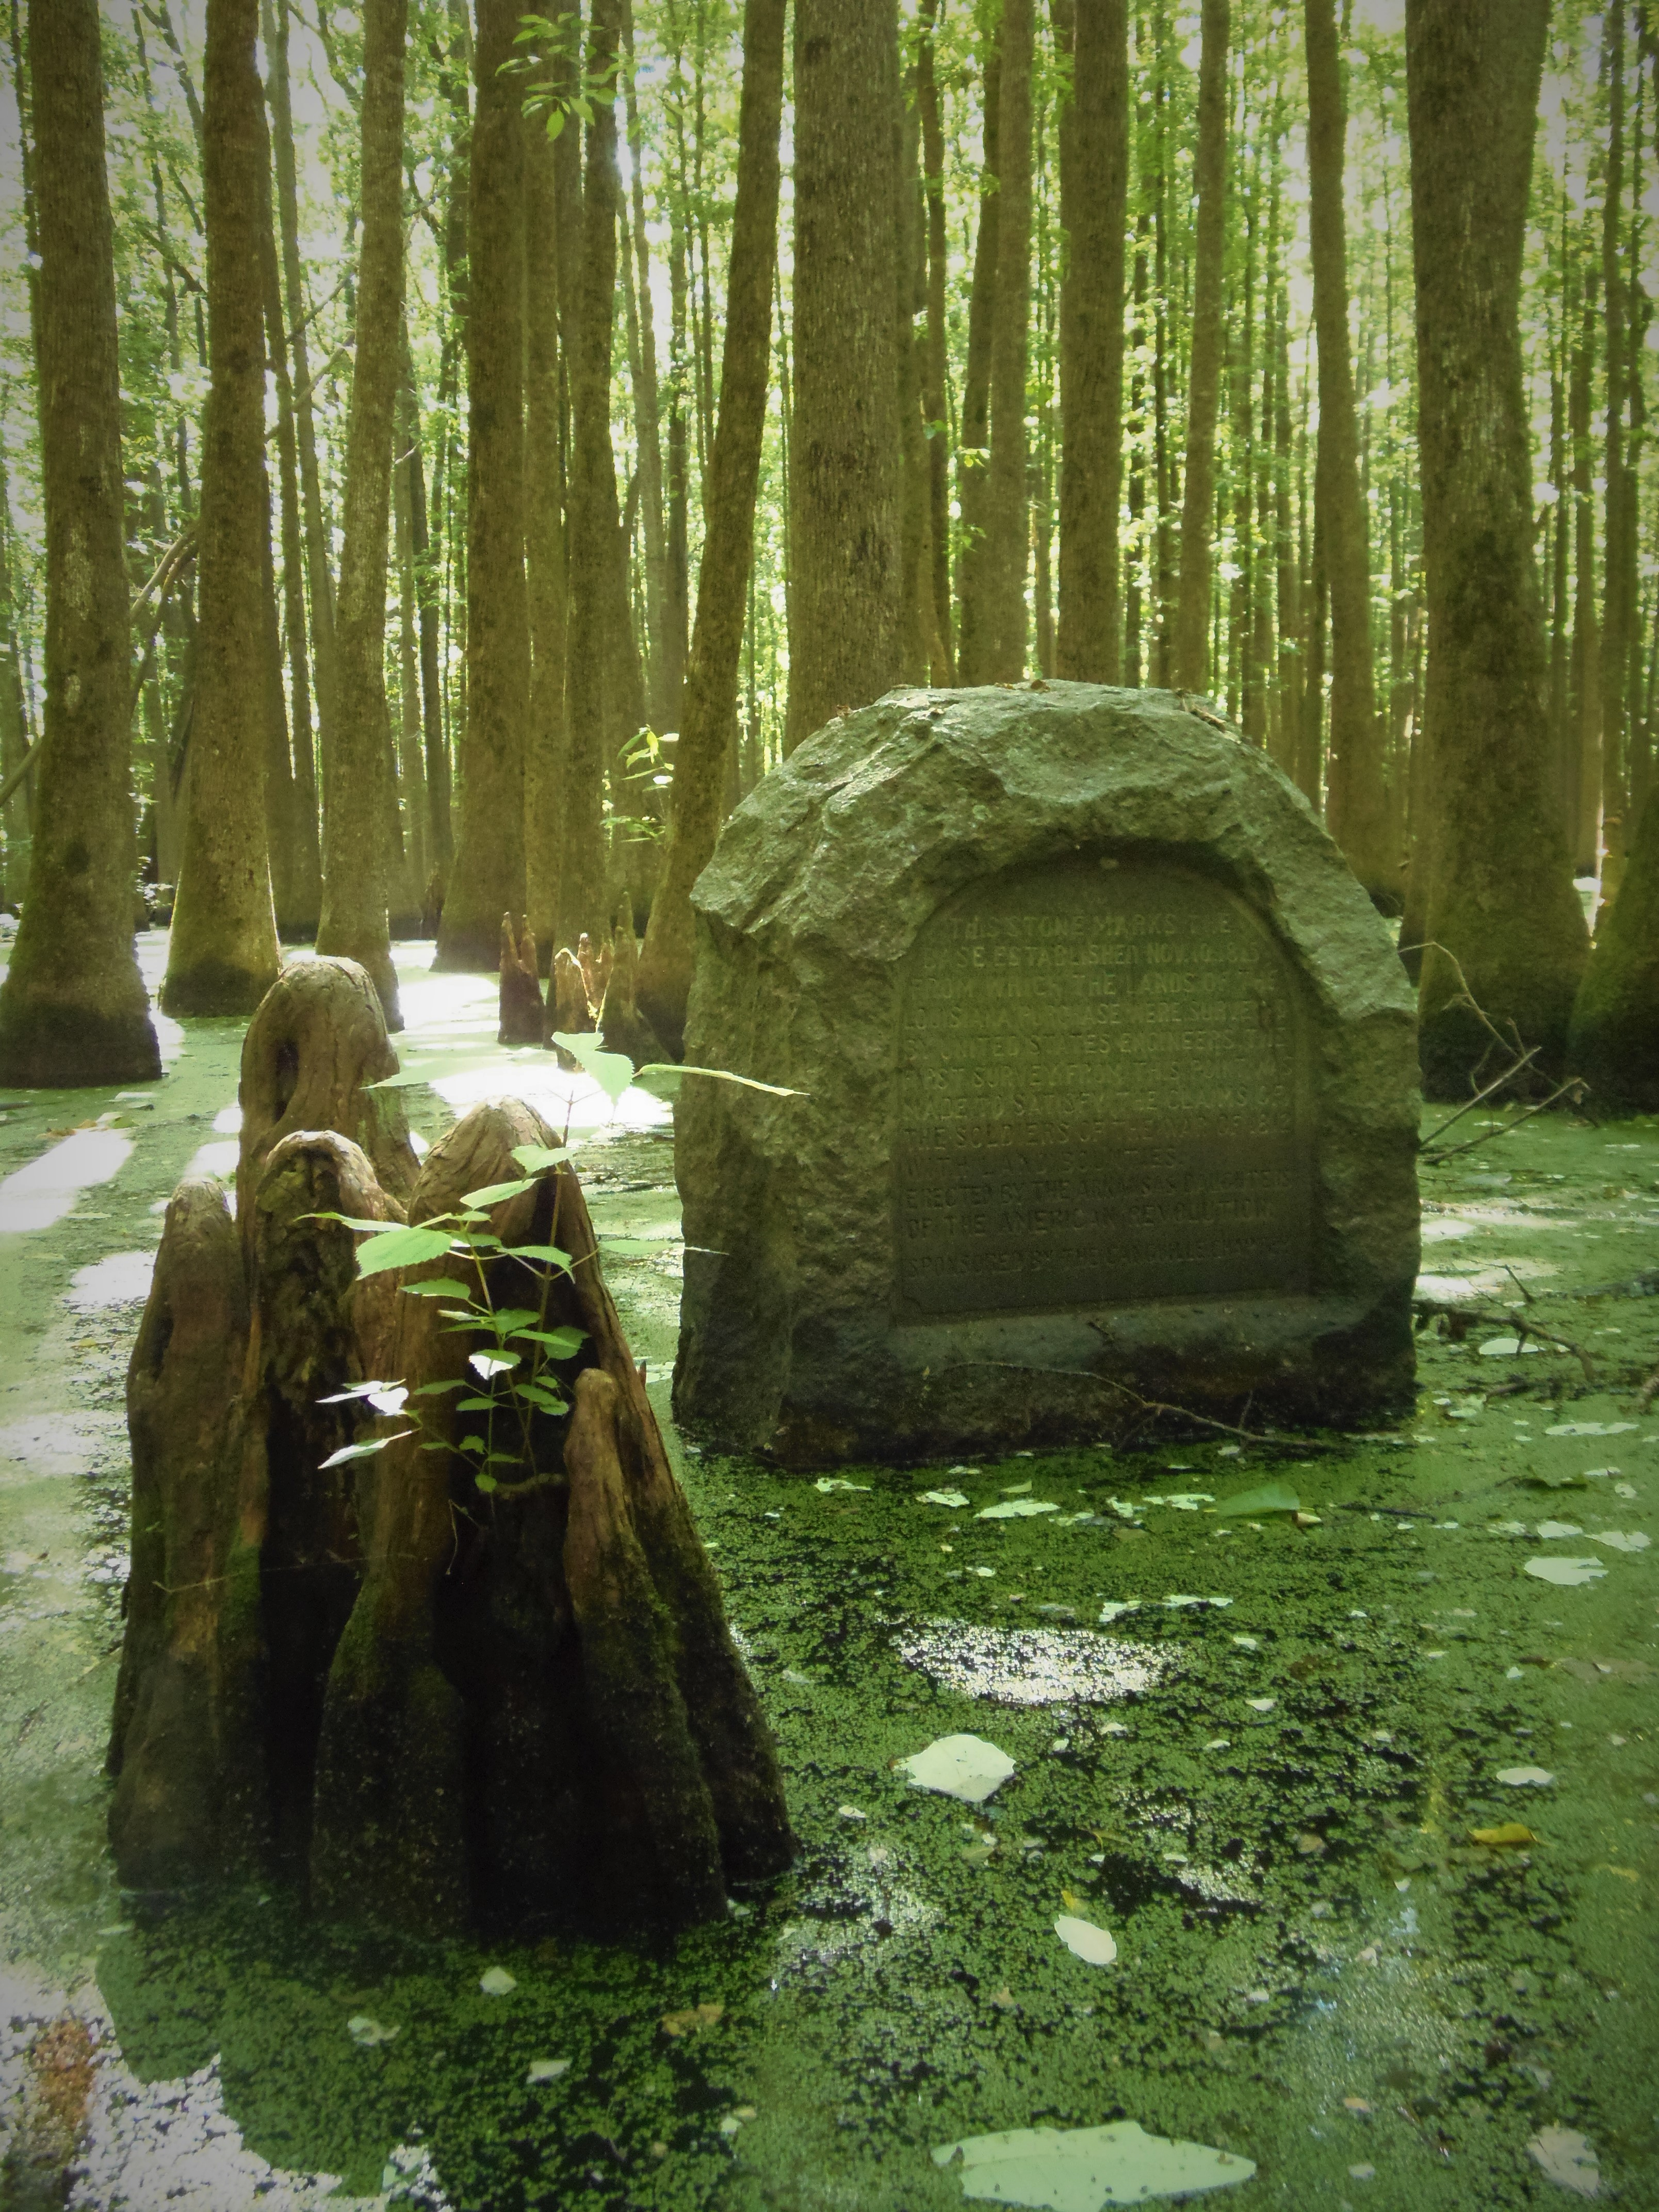 Granite monument in swamp with water at its base. Trees growing in background as far as viewer can see.